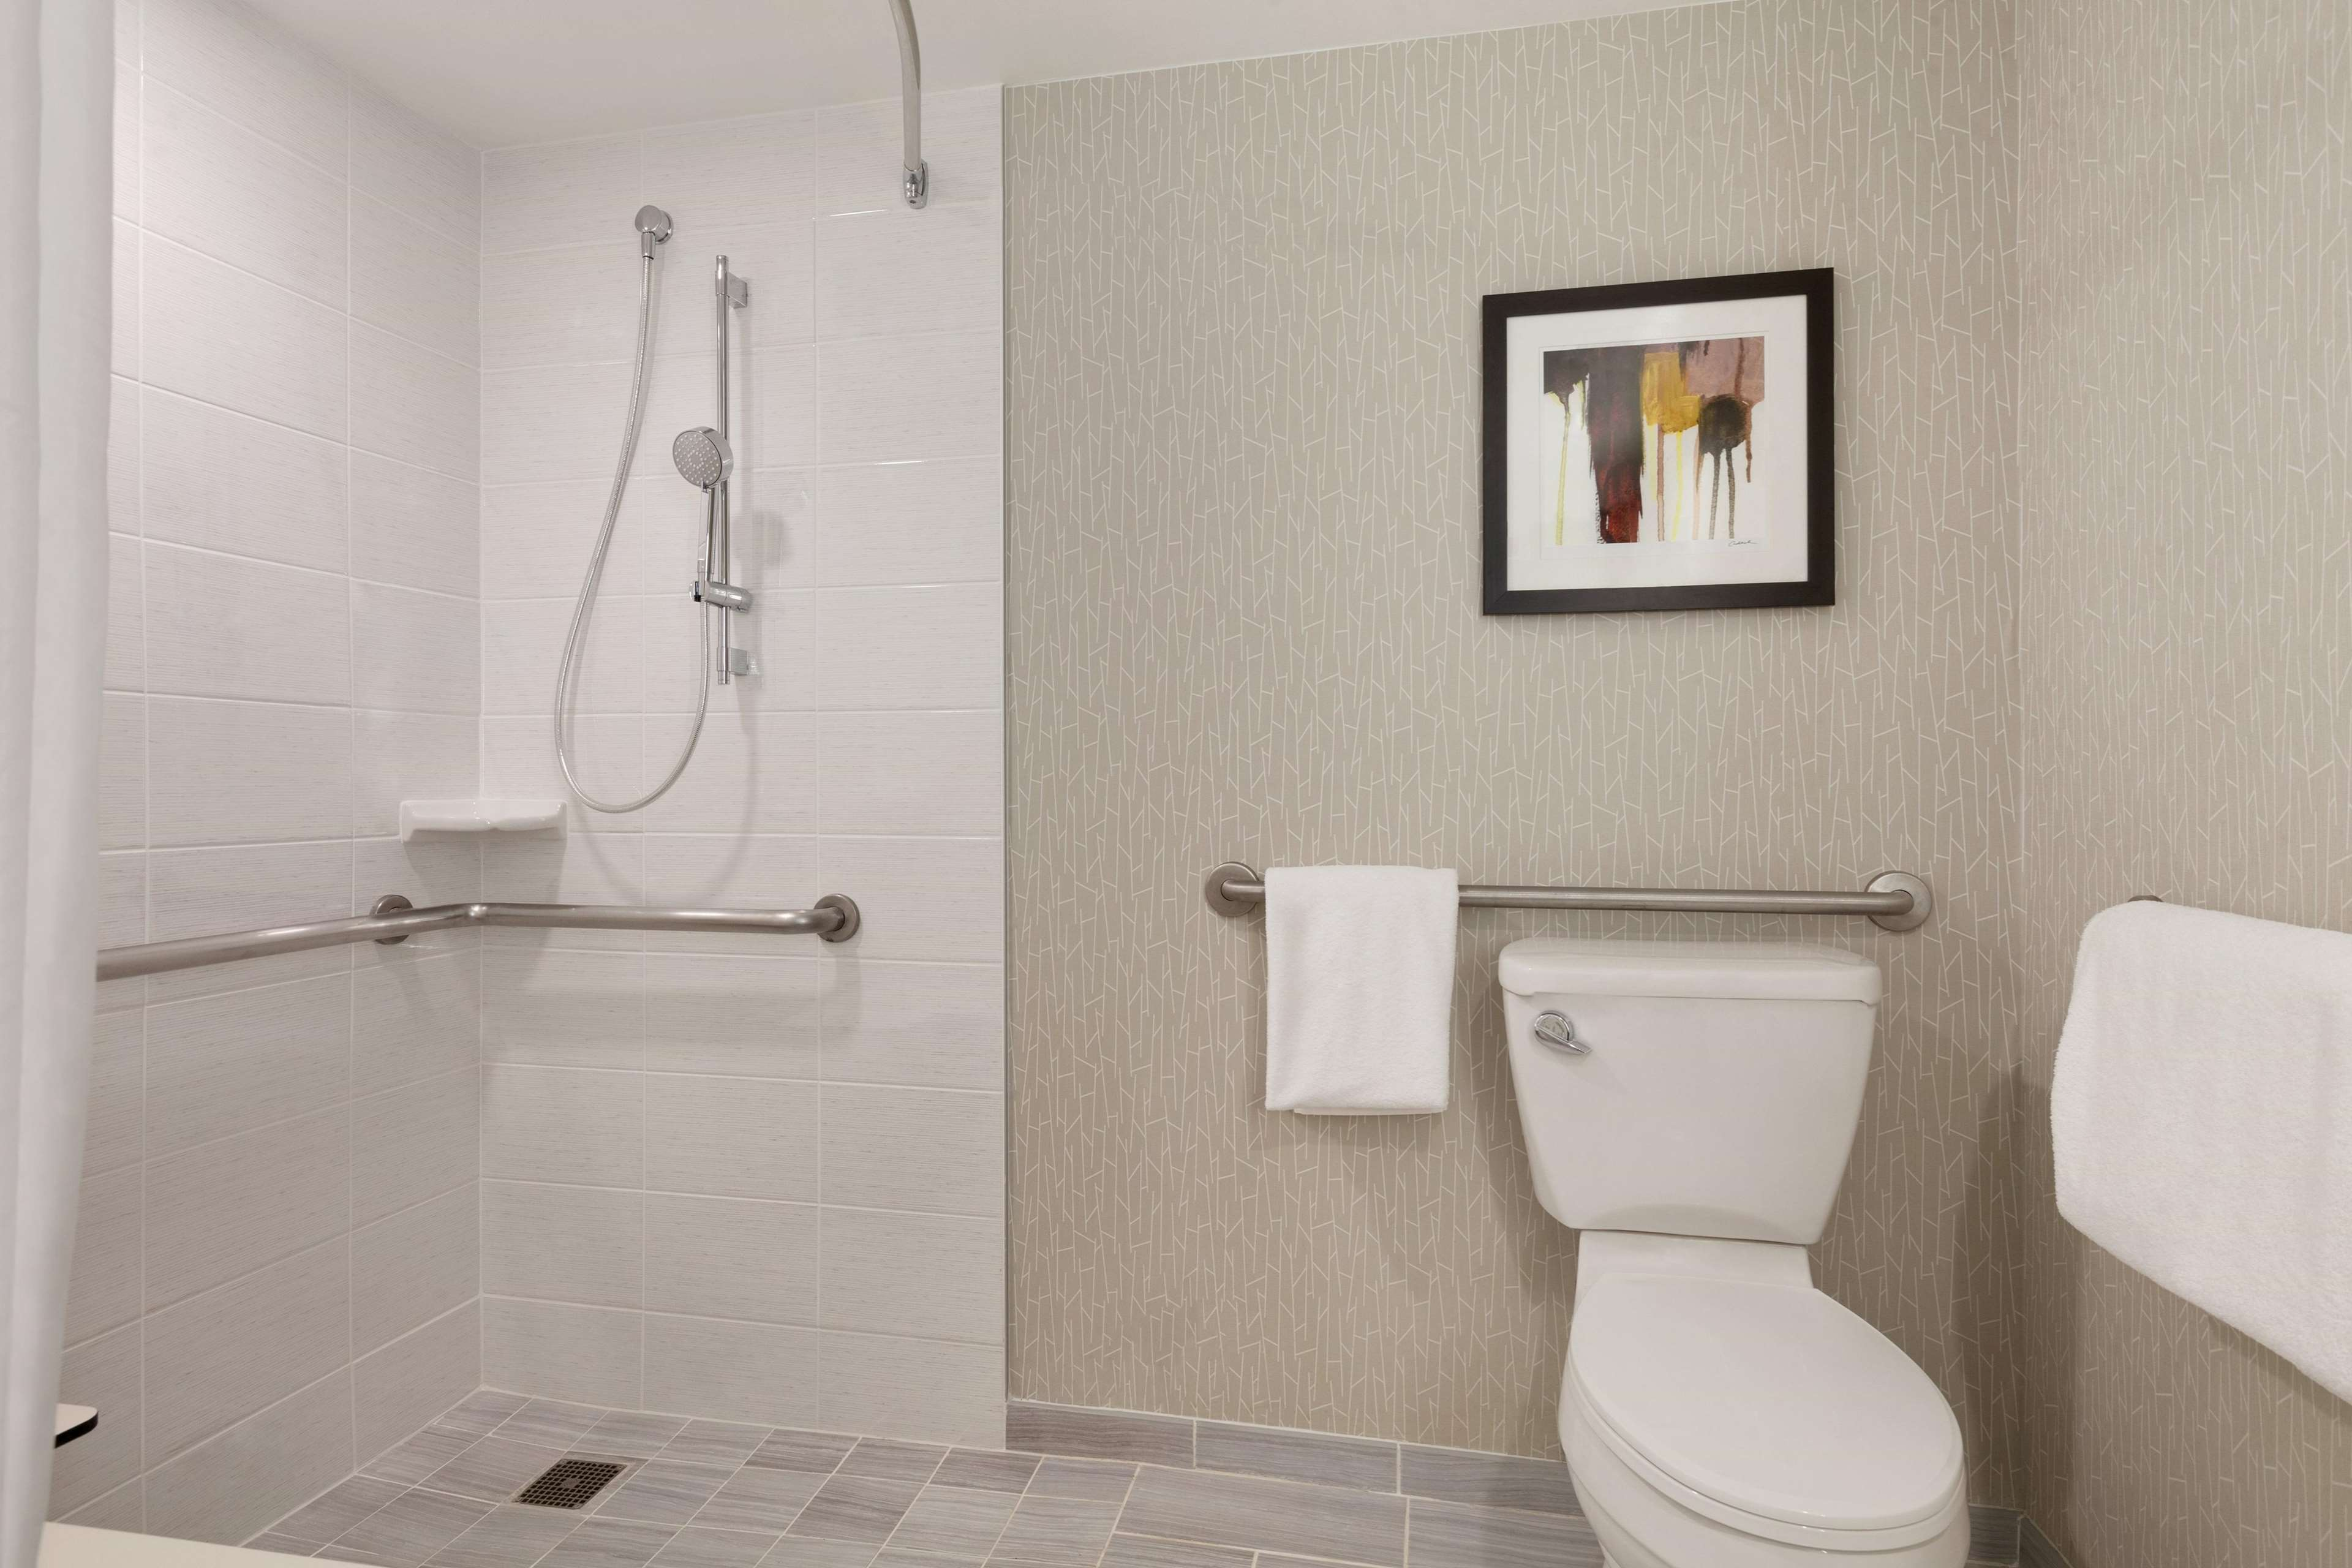 Accesible Bathroom Roll-in Shower